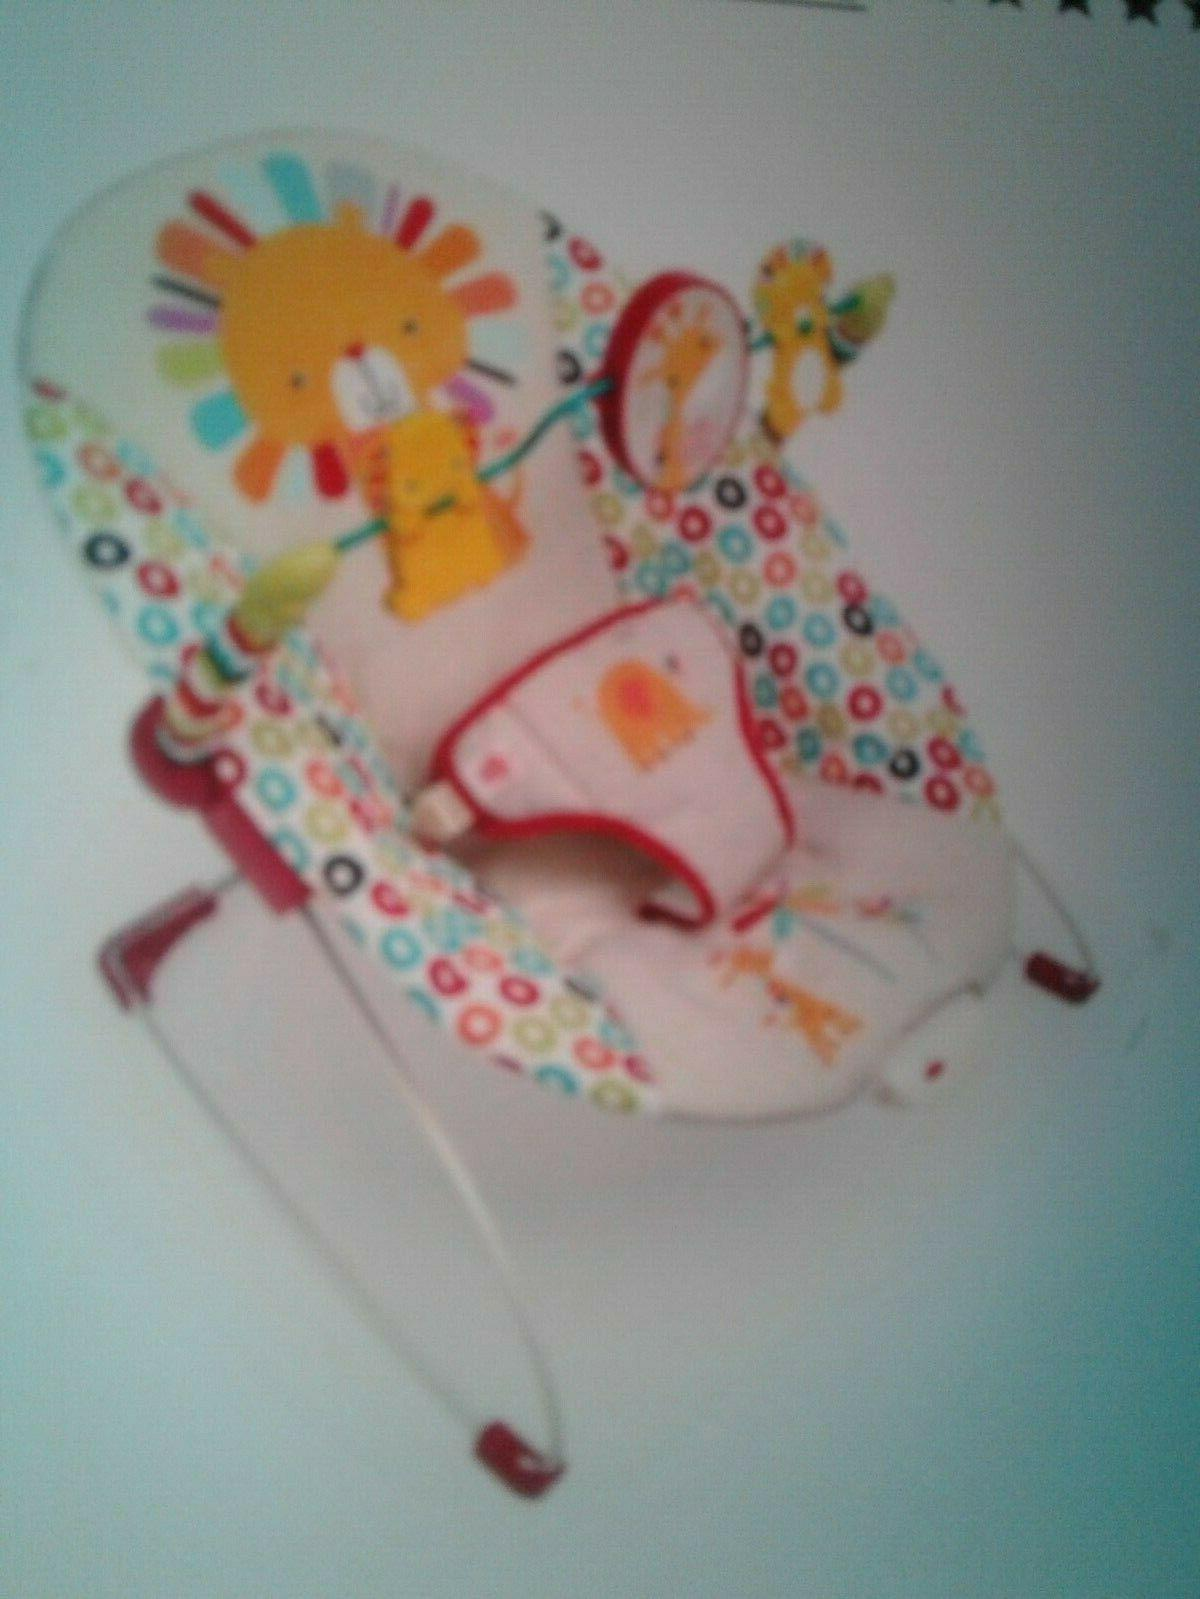 bouncer seat for boy or girl 0